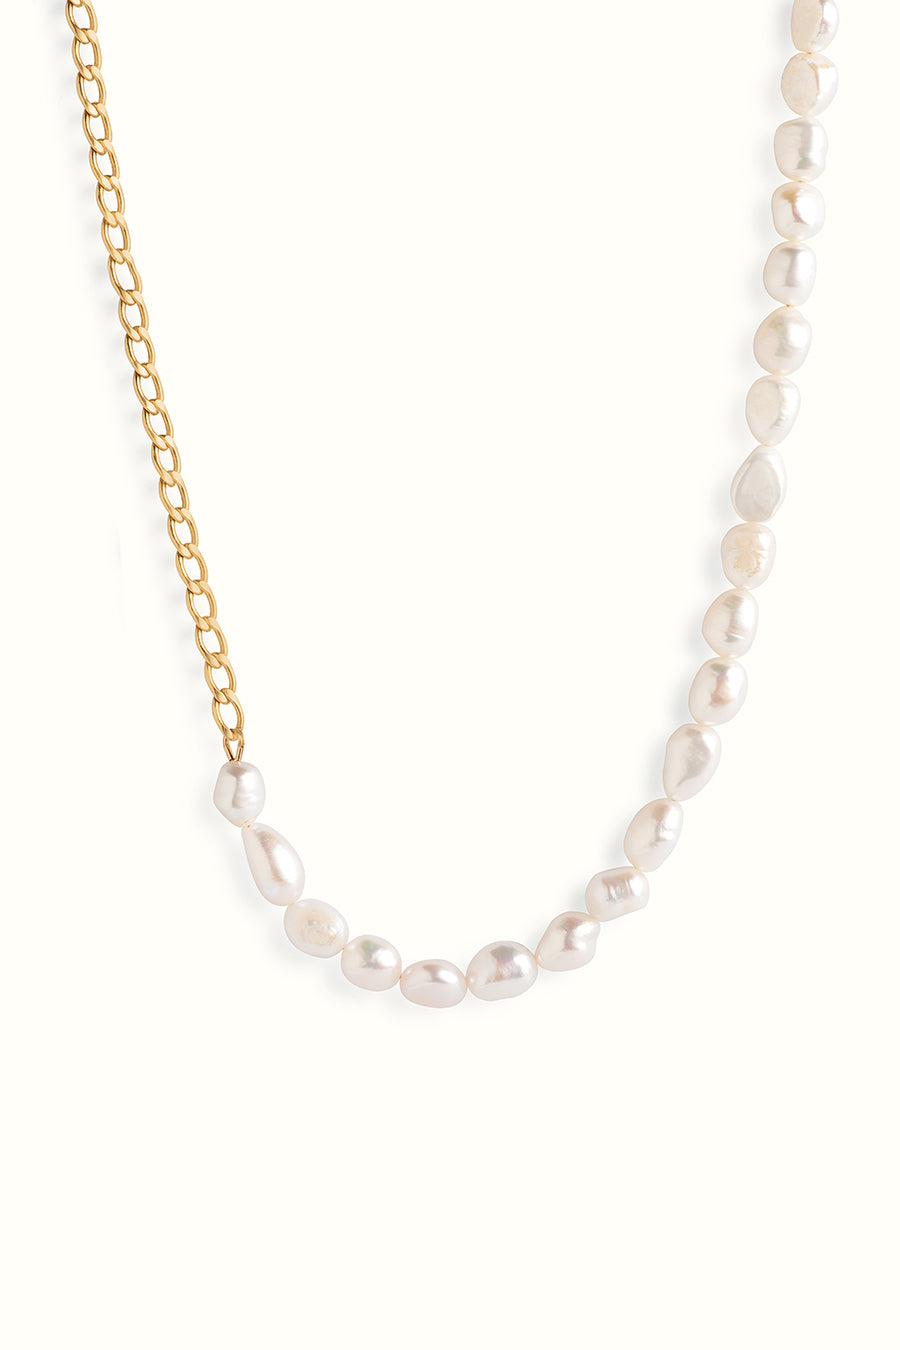 a necklace that is made of half gold filled curb chain and half fresh water pearls